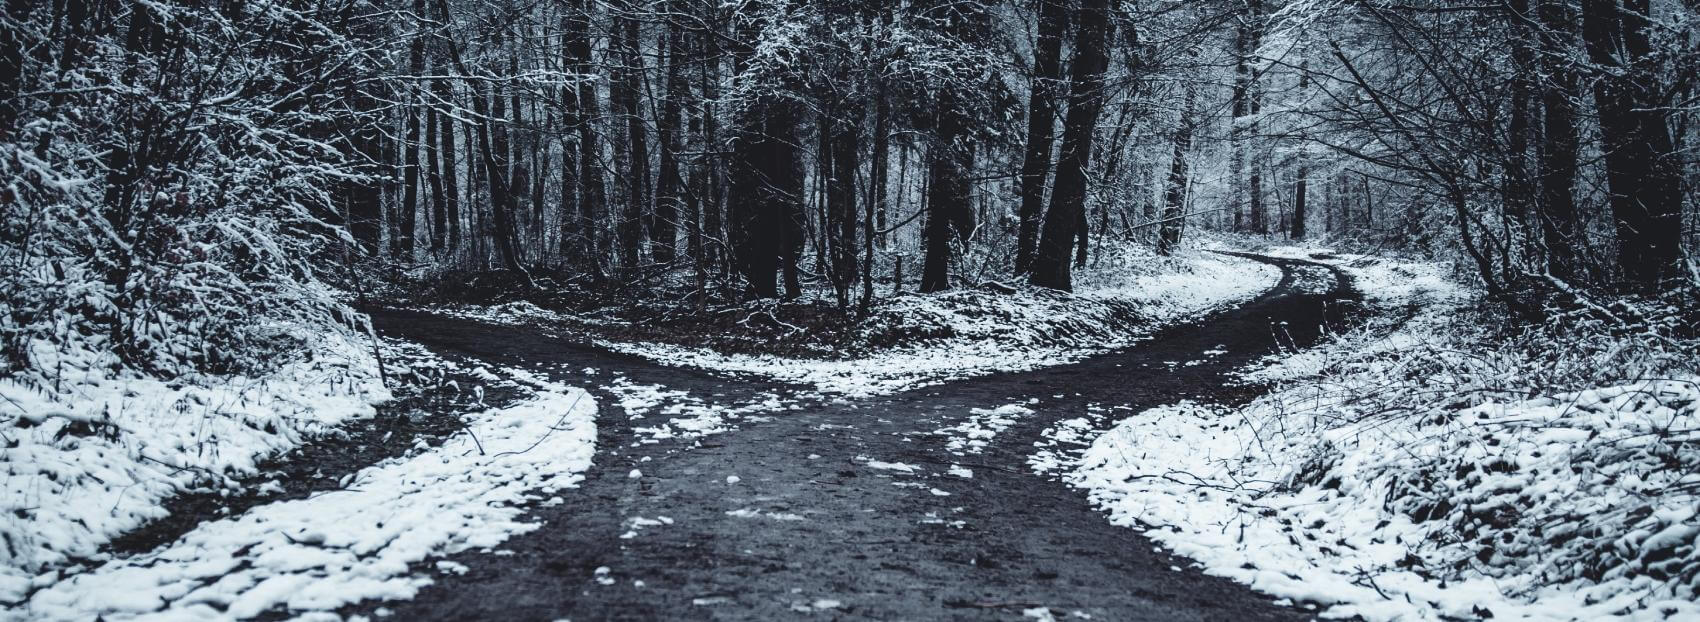 two paths banner - oliver-roos-571292-unsplash